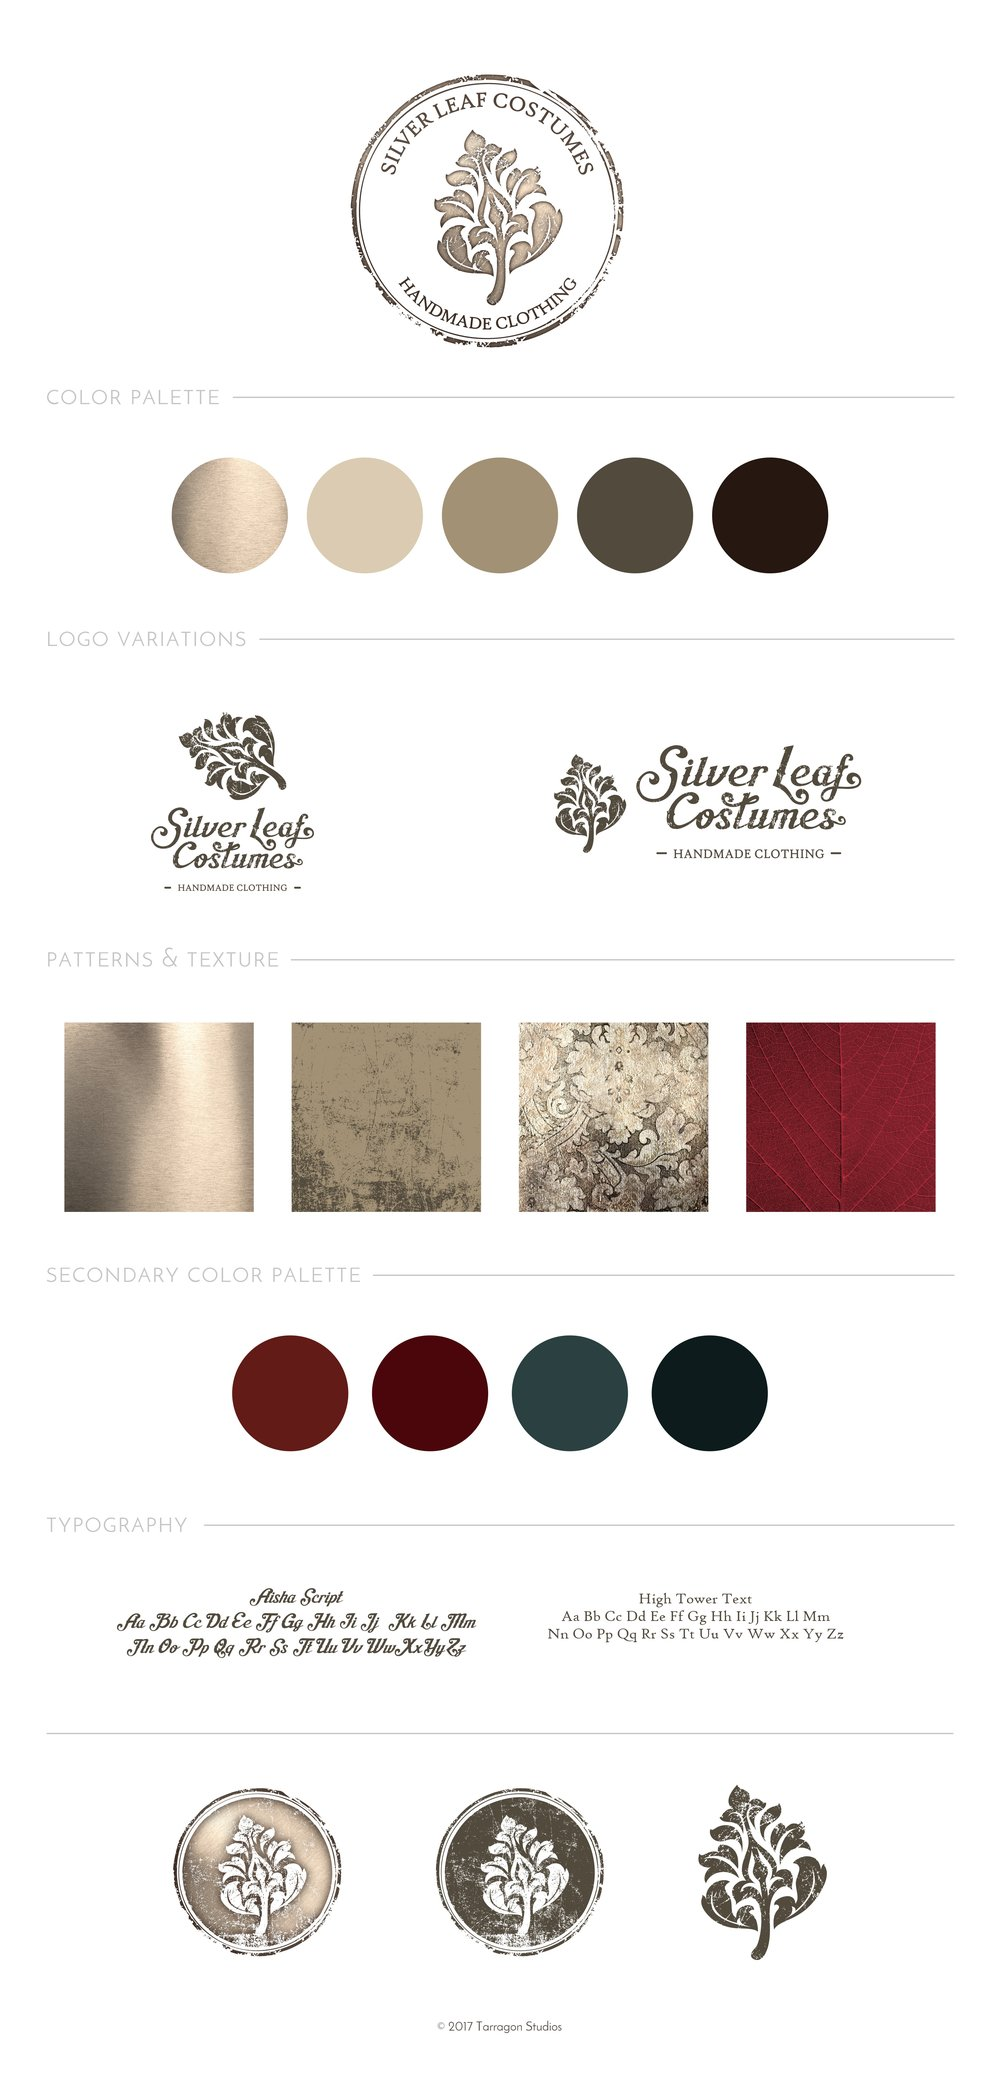 Silver Leaf Costumes - Style Guide - by Tarragon Studios